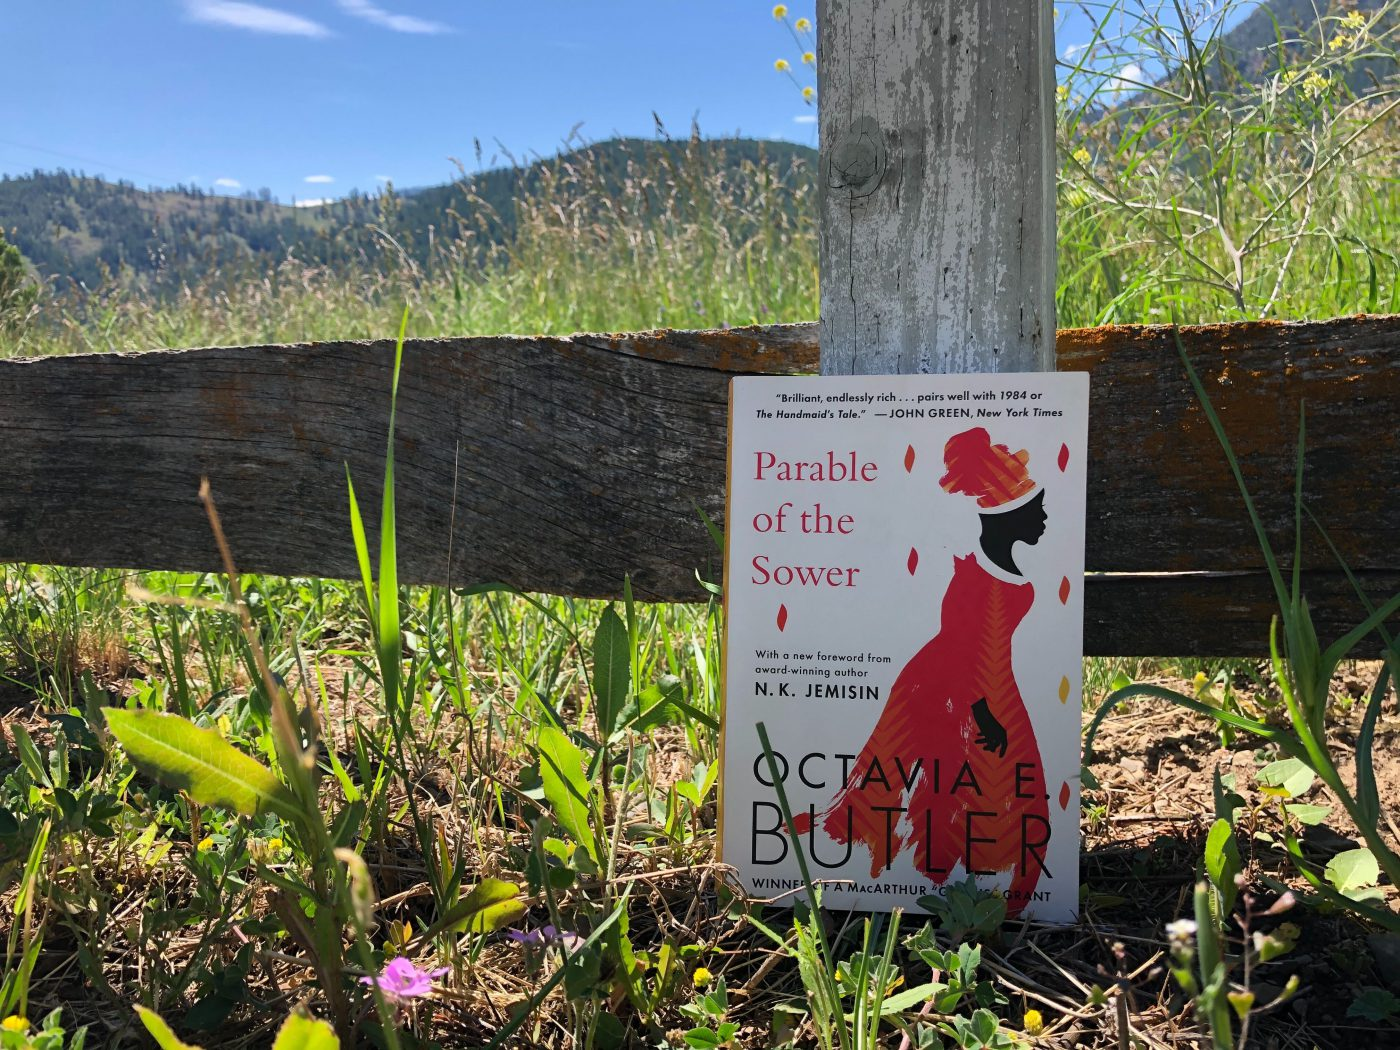 SAM Book Club: Empathy Lives On in Parable of the Sower